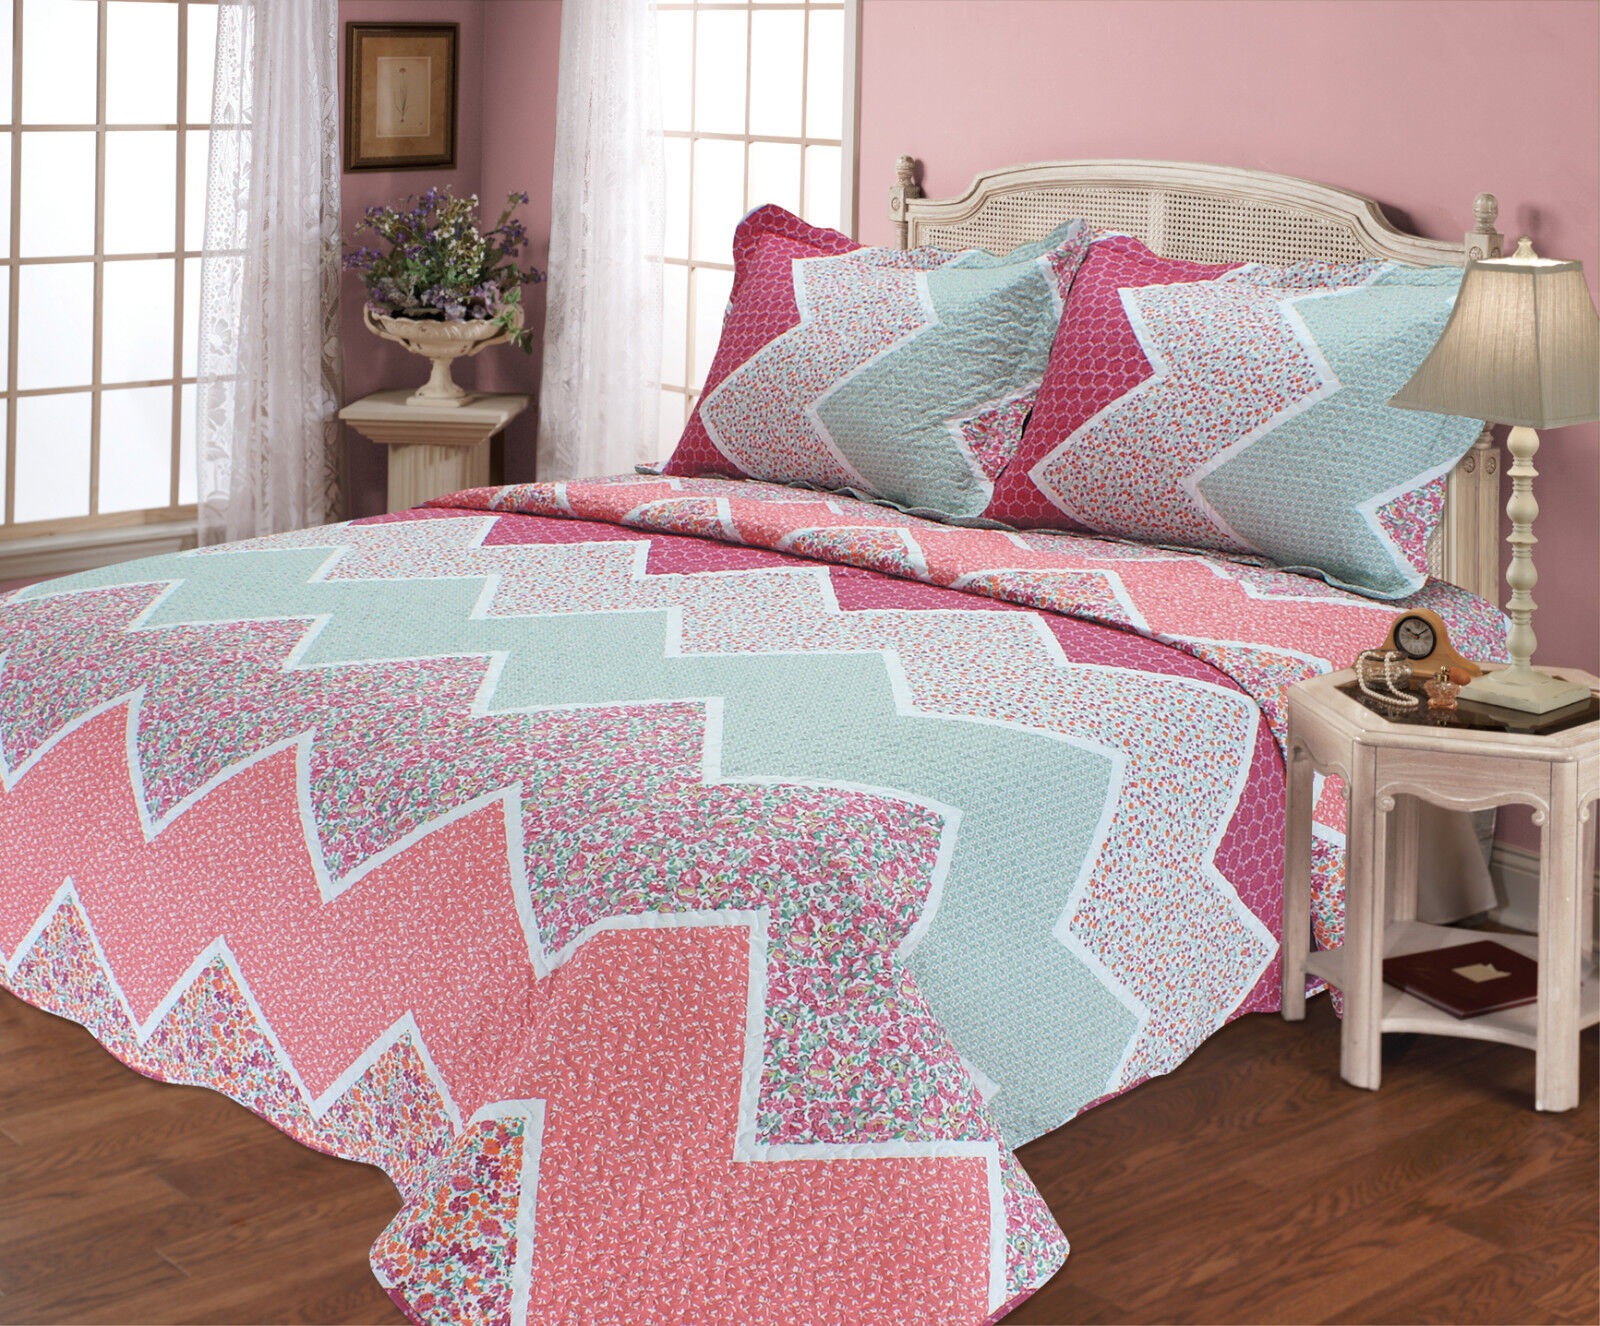 ALL FOR YOU Reversible Bedspread, Coverlet,Quilt 68 Farbeful Wave Prints